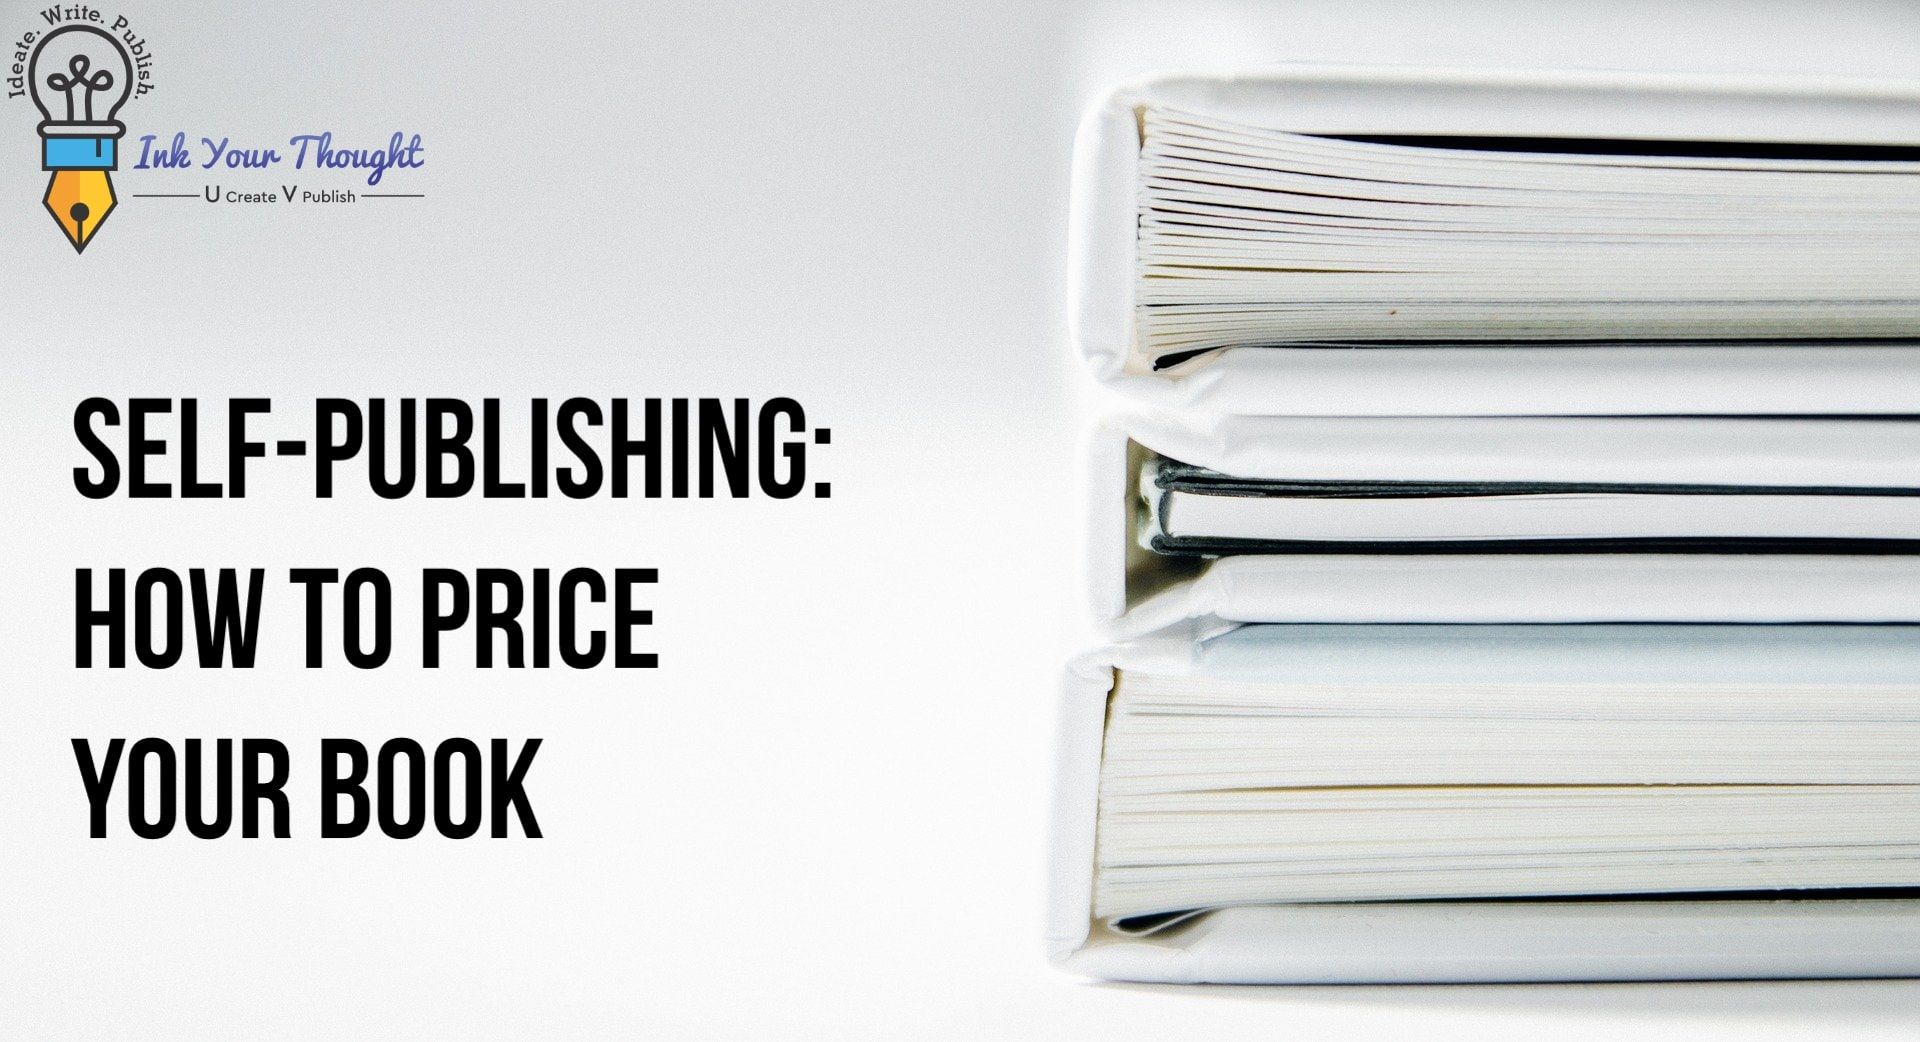 Self-Publishing: How to price your book?